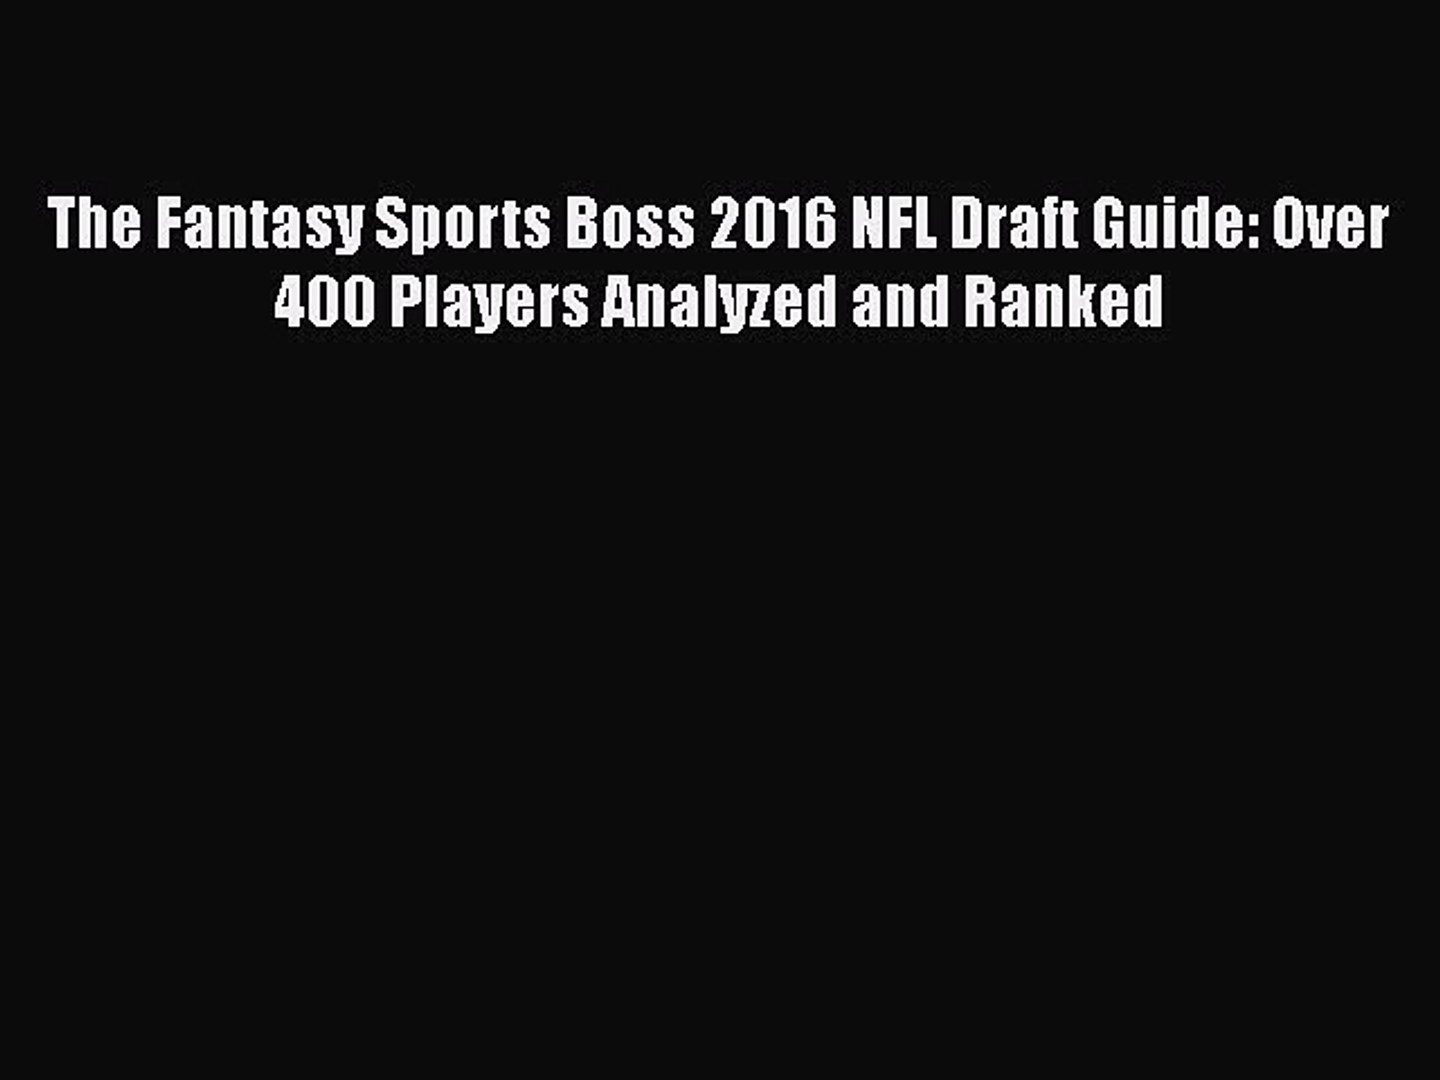 PDF The Fantasy Sports Boss 2016 NFL Draft Guide: Over 400 Players Analyzed and Ranked  Read